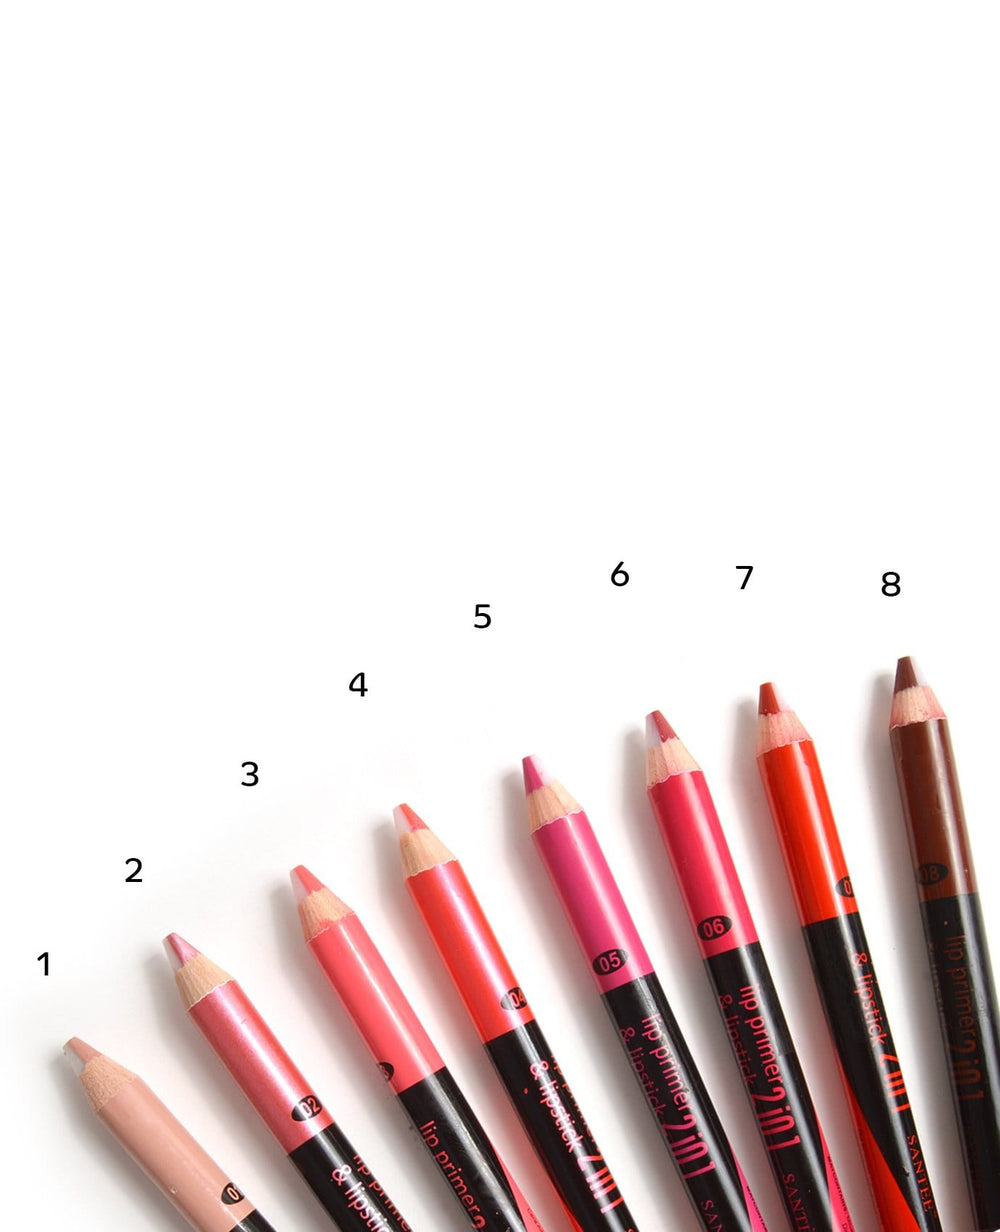 Santee 2 in 1 Lipstick Pencil